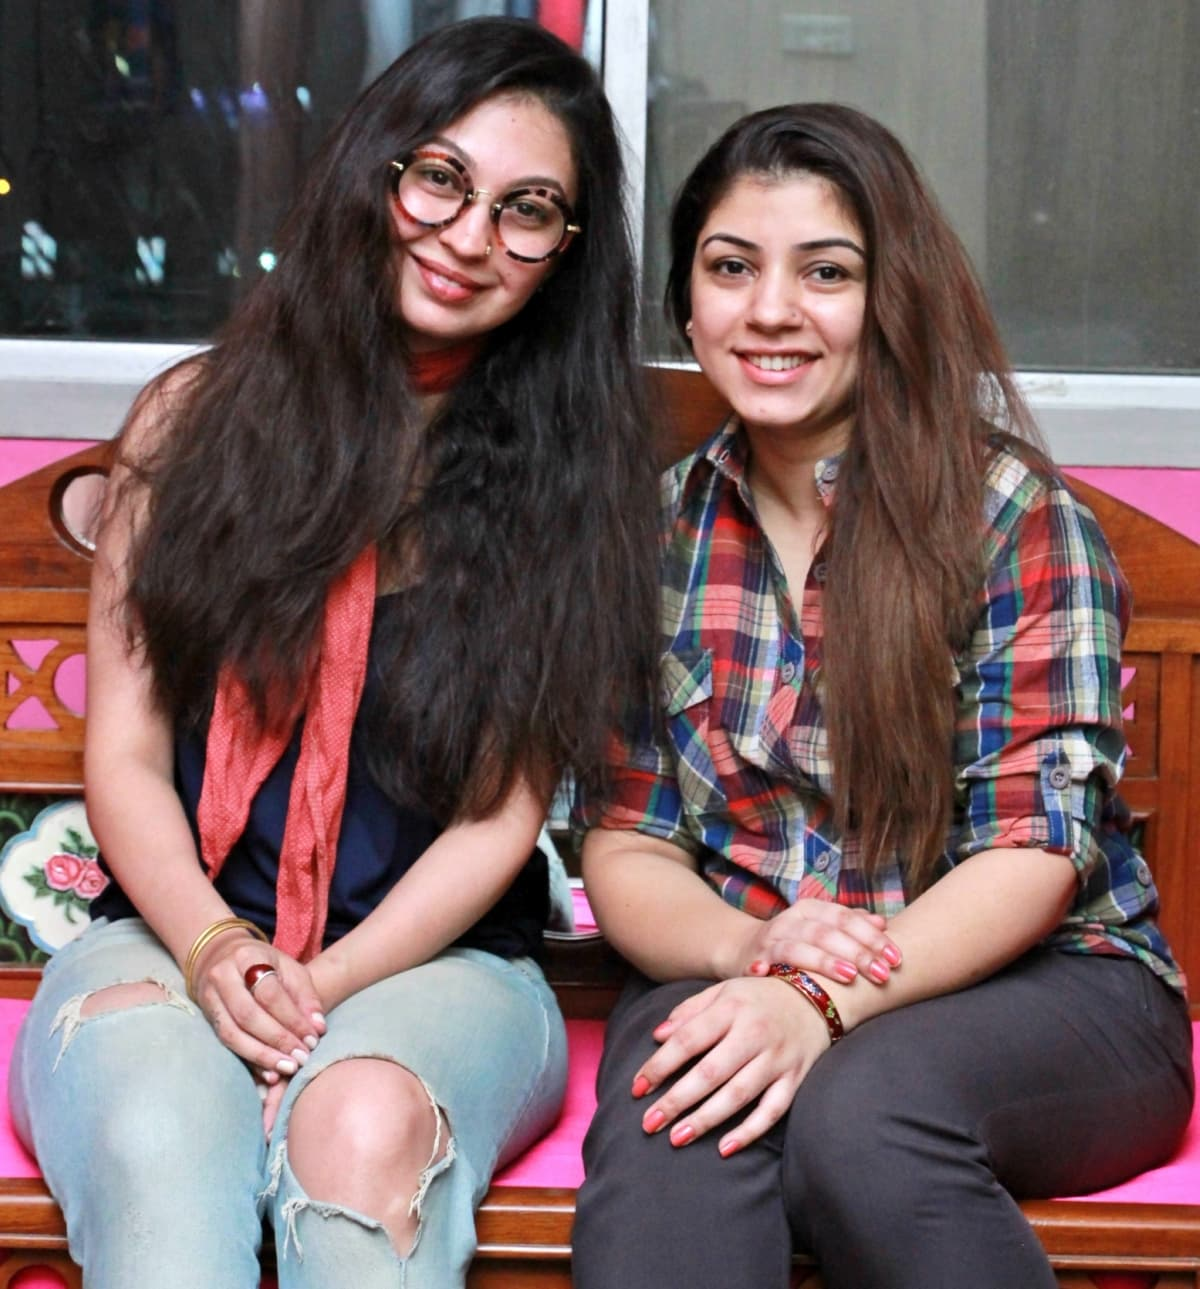 Forum on this topic: Mary Hayley Bell, rubya-chaudhry/